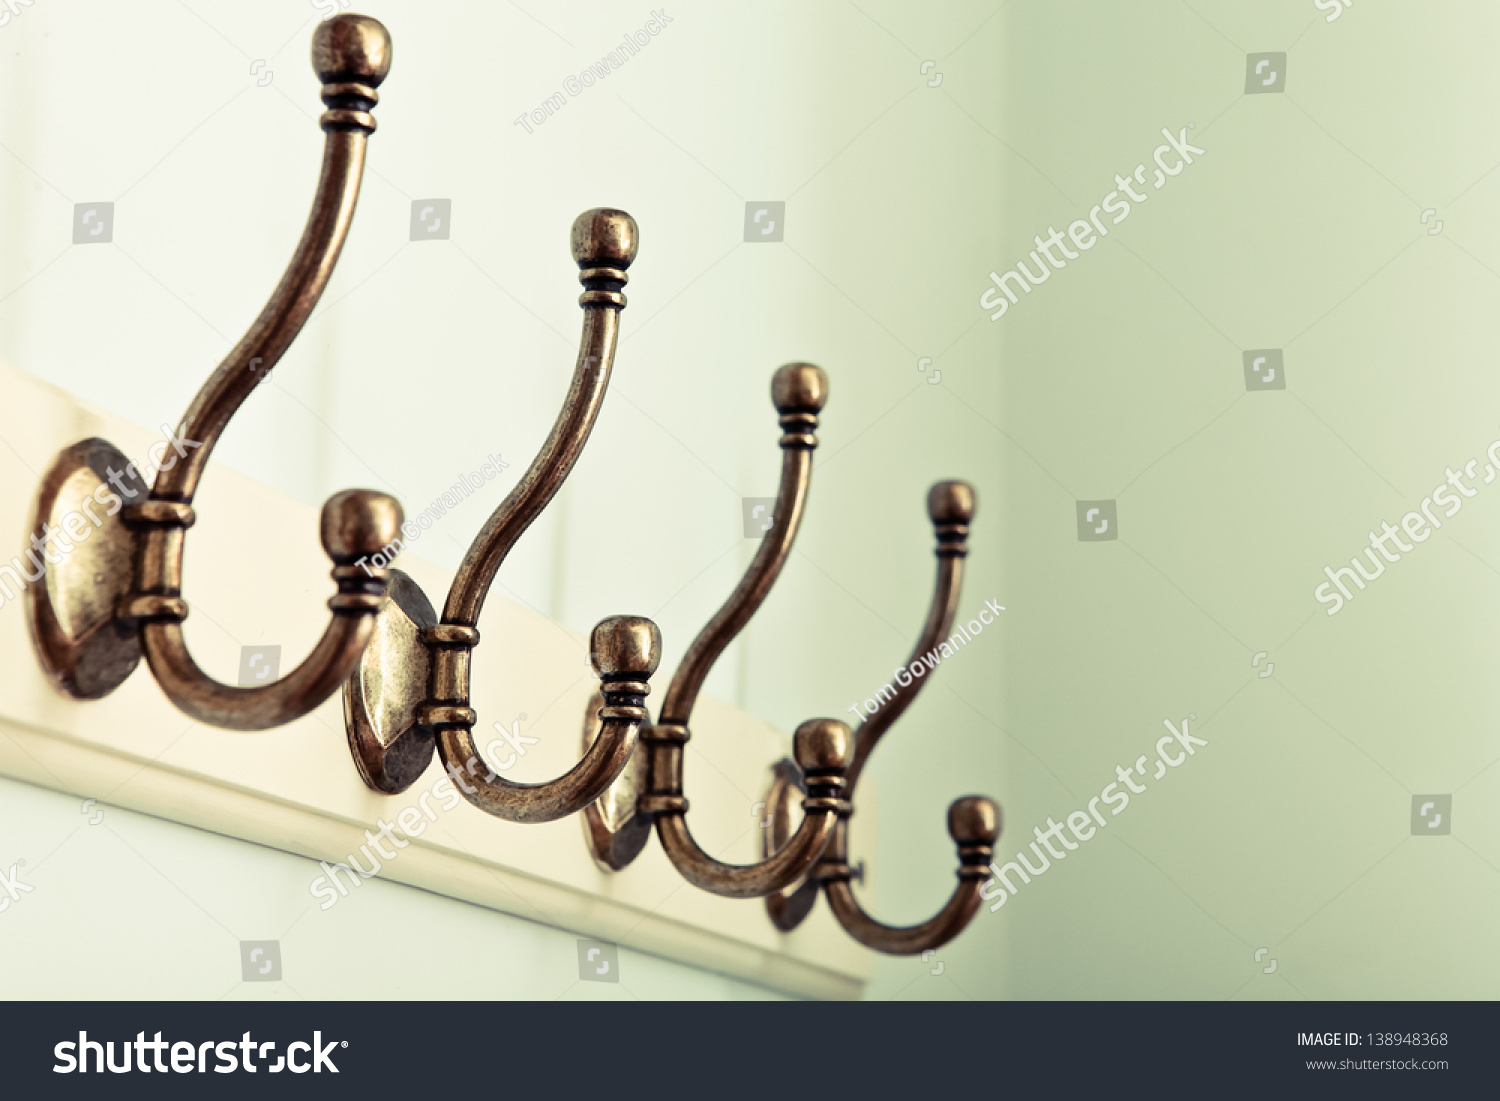 Row of vintage coat hooks on a wooden plaque stock photo 138948368 shutterstock - Cast iron row of hooks ...